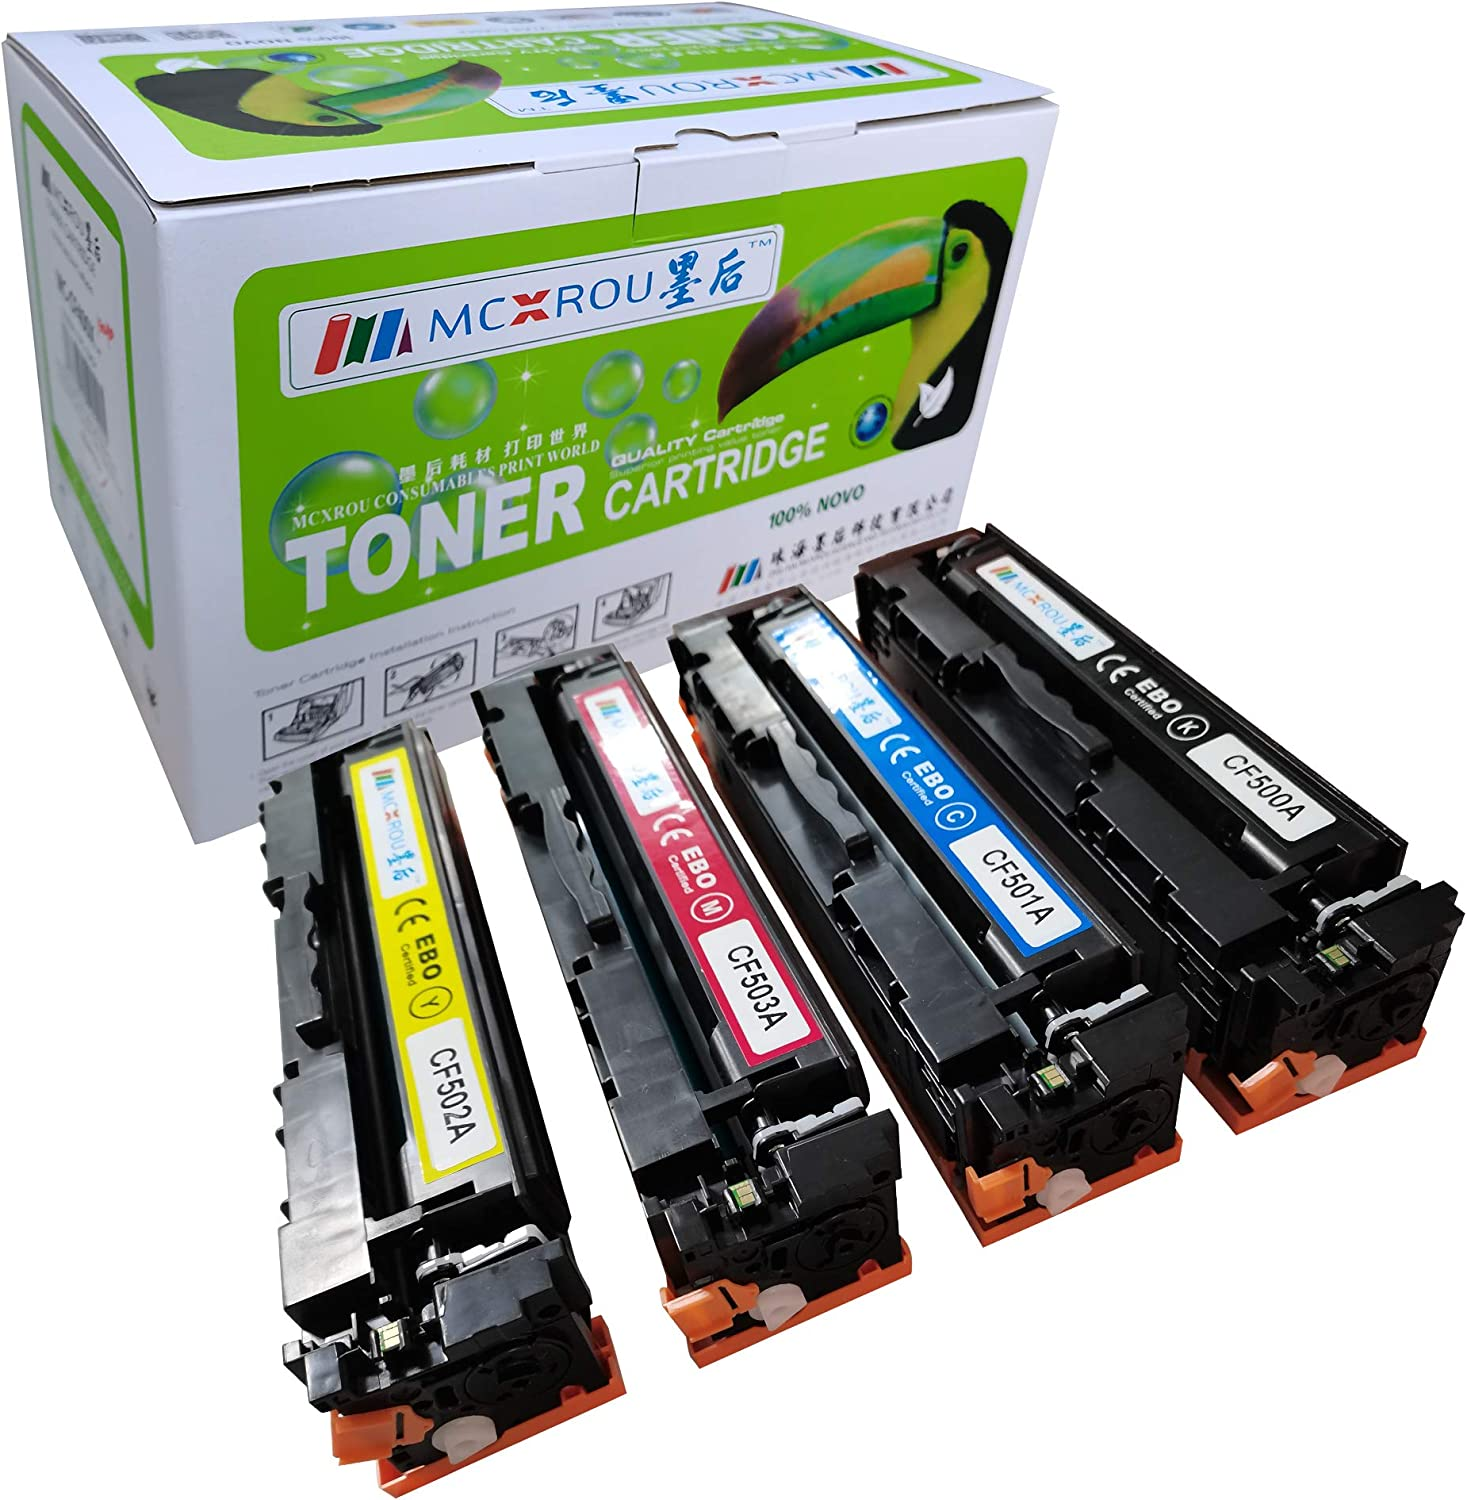 MCXROU MC-CF500A Compatible Toner Cartridge Replacement for HP CF500A 202A 202X CF500X Work for HP Laserjet Pro HP Laserjet Pro MFP M281fdw M281cdw M254dw M281 M254nw(Bk, C, M, Y, 4 Pack)